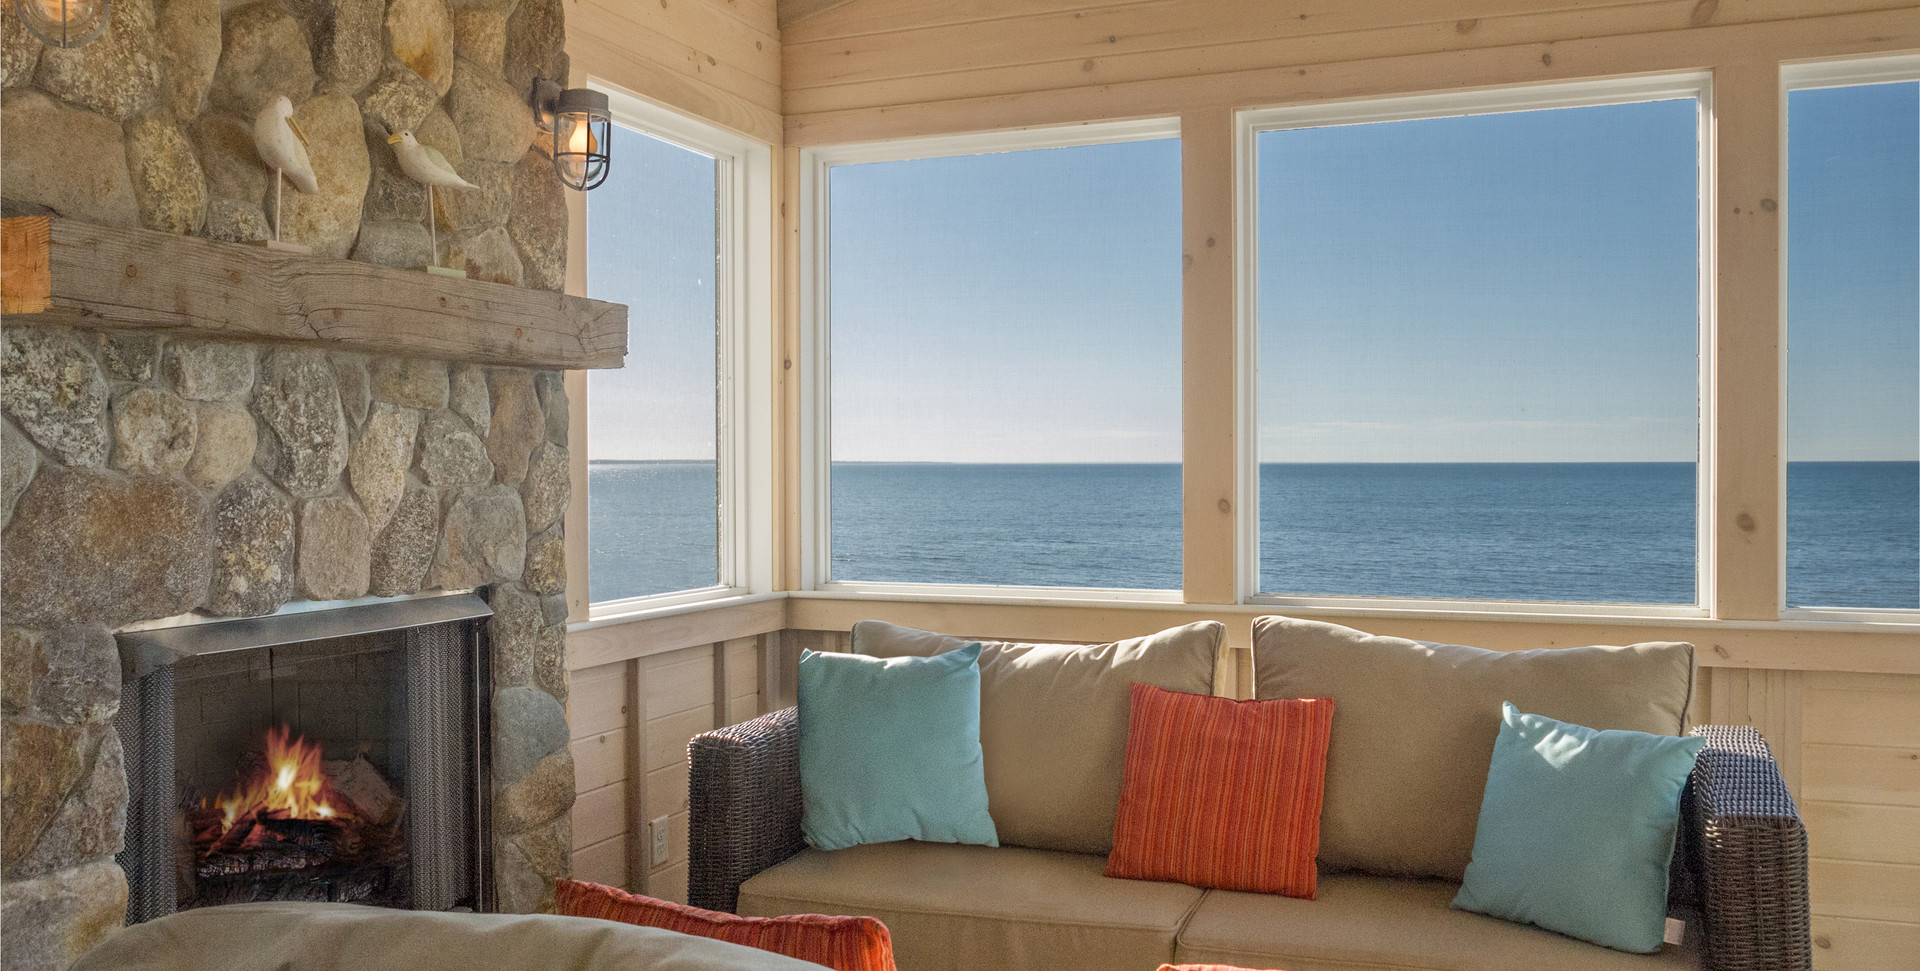 First Encounter Beach, Eastham MA New Home Construction with four season room with fireplace